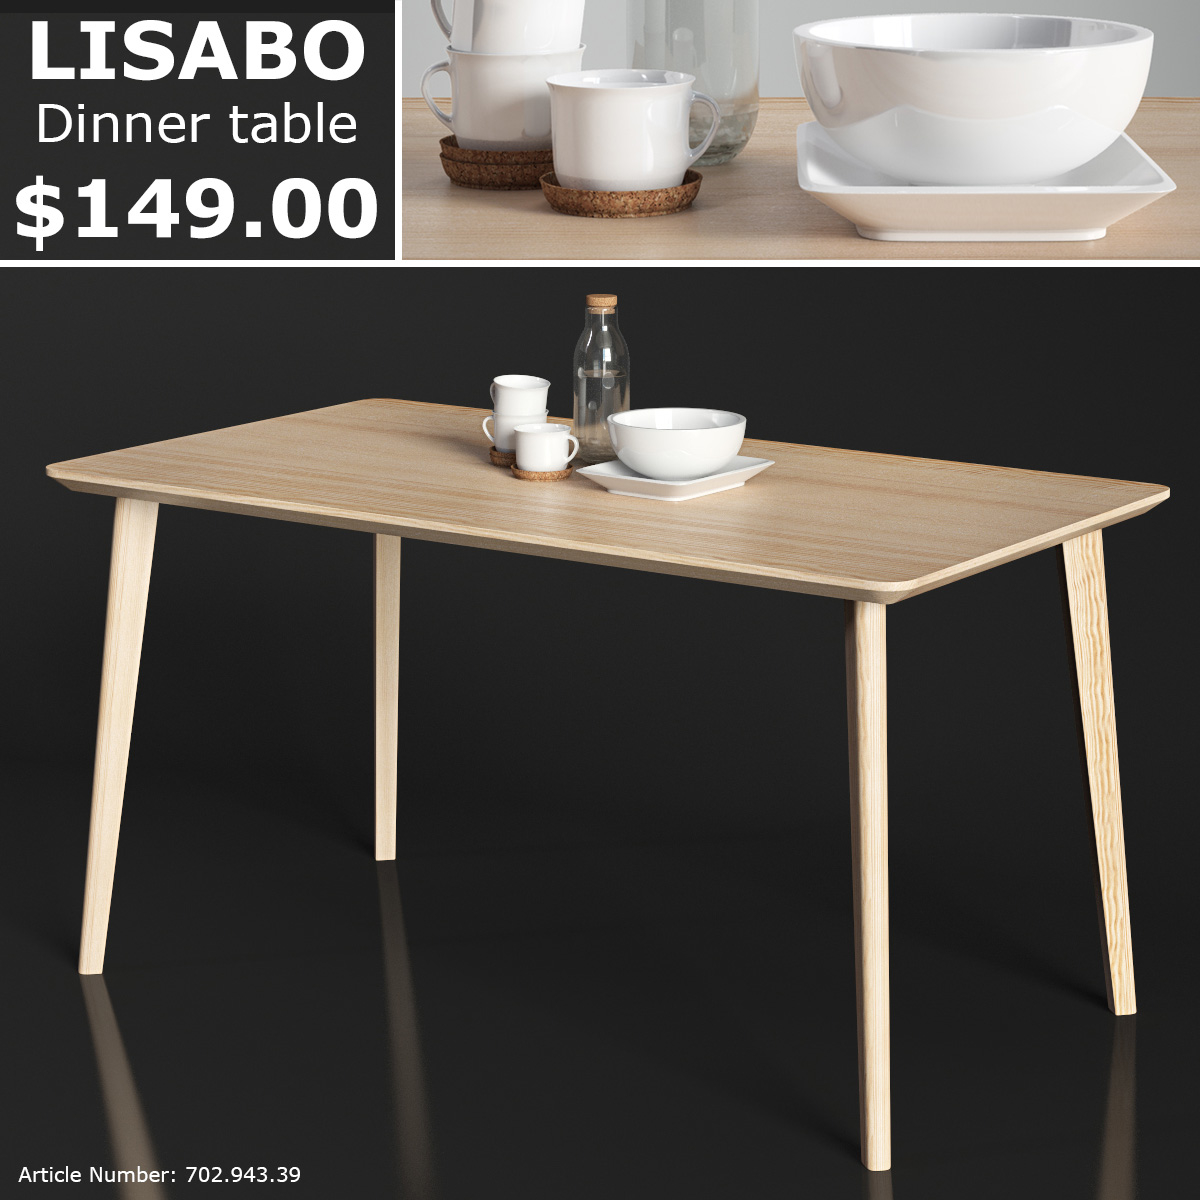 3d Ikea Lisabo Dinner Table Turbosquid 1222616